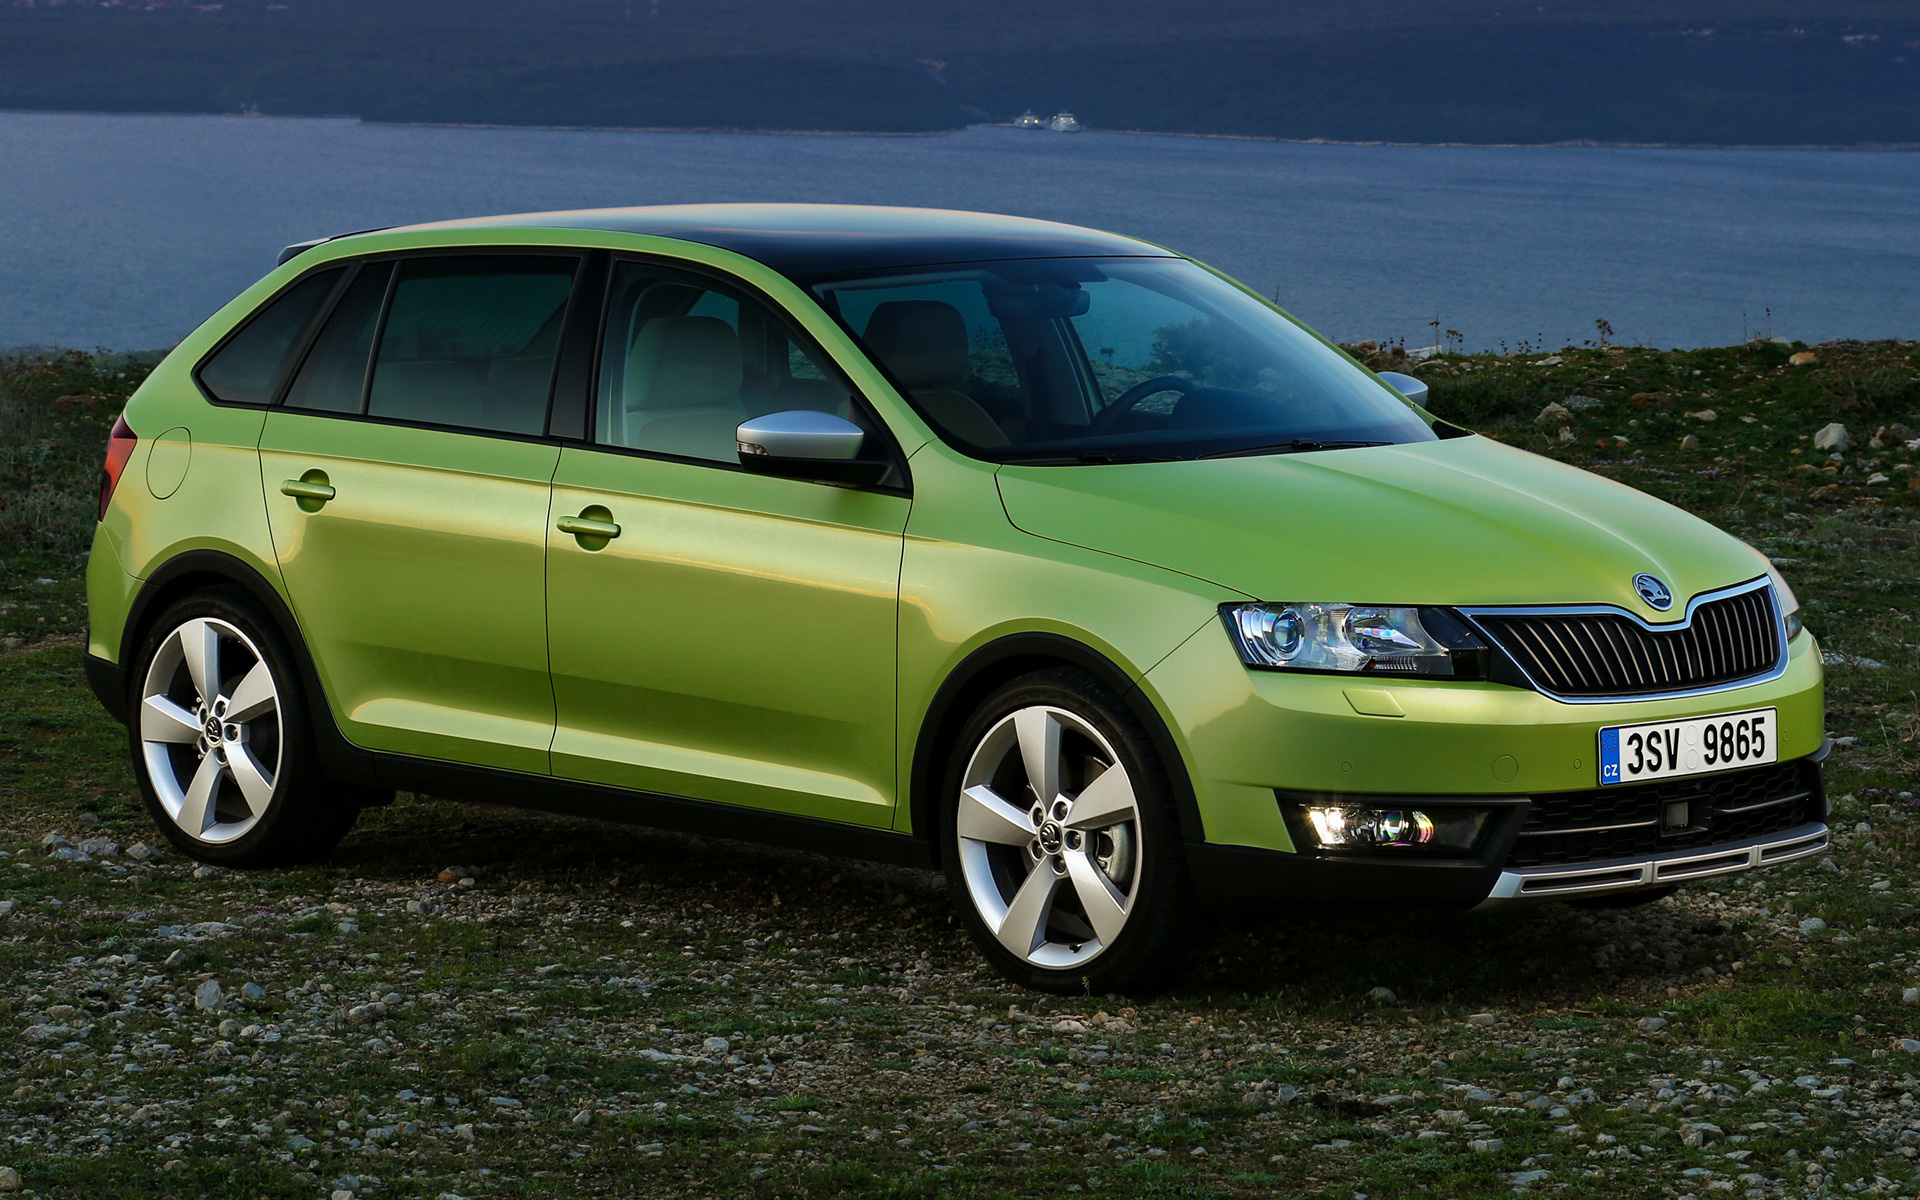 Genesis Car Wallpaper 2015 Skoda Rapid Spaceback Scoutline Wallpapers And Hd